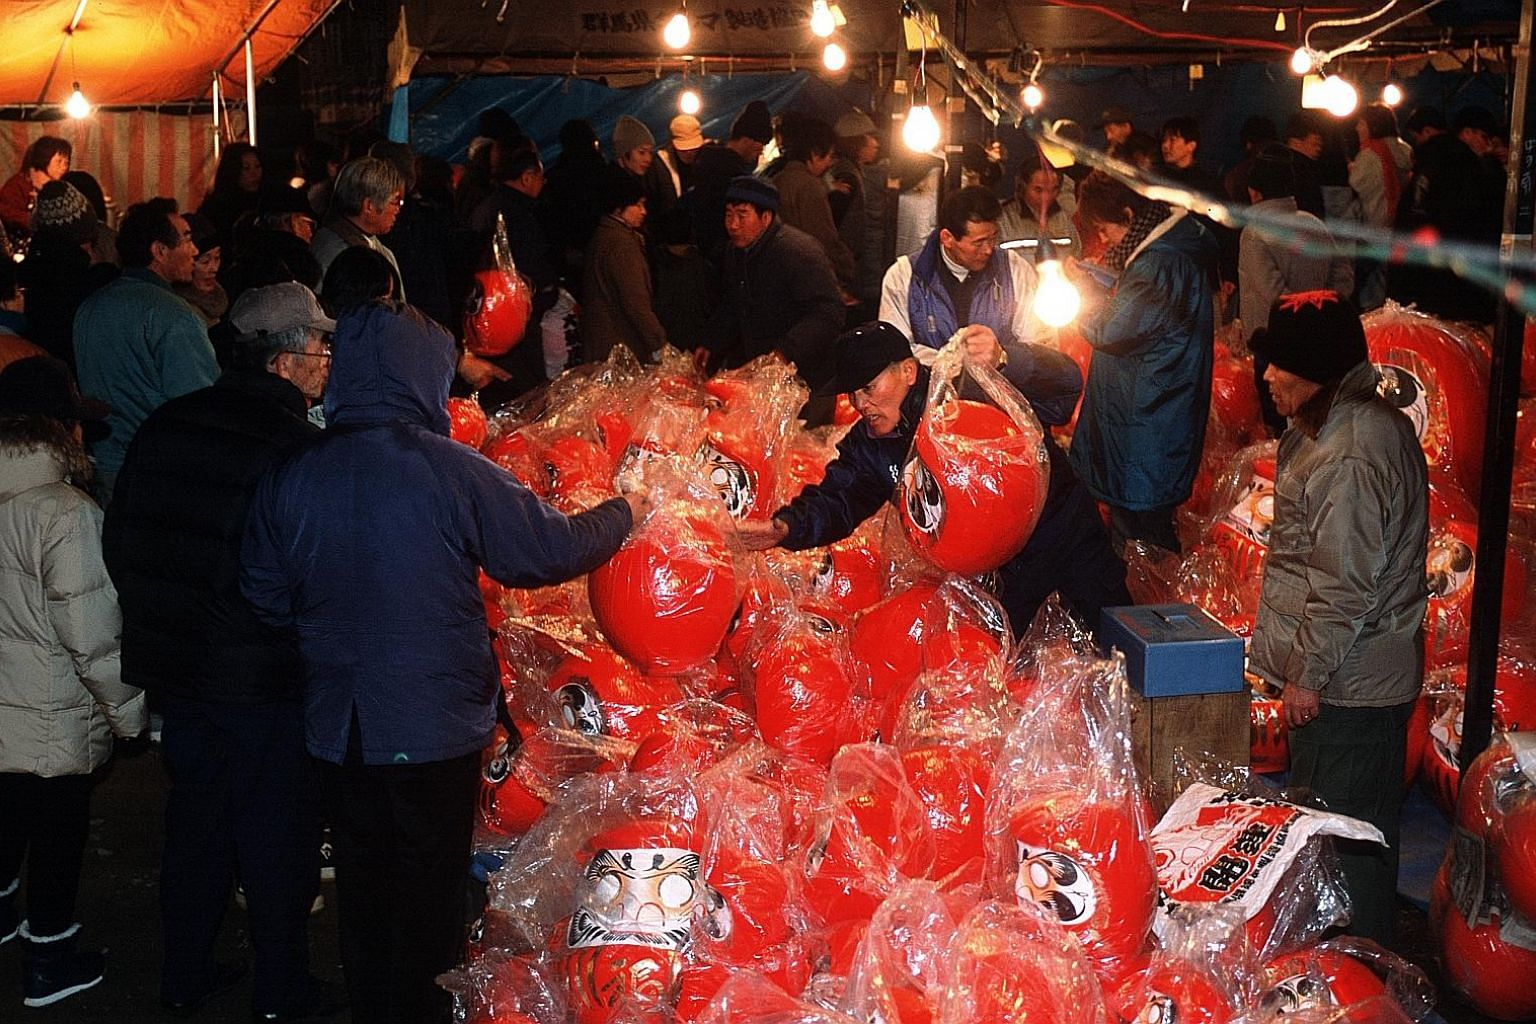 More than 300,000 people visit Shorinzan Daruma Temple in Takasaki, Japan, during the Daruma festival on Jan 6 and 7 to buy the round dolls for good luck in the new year.